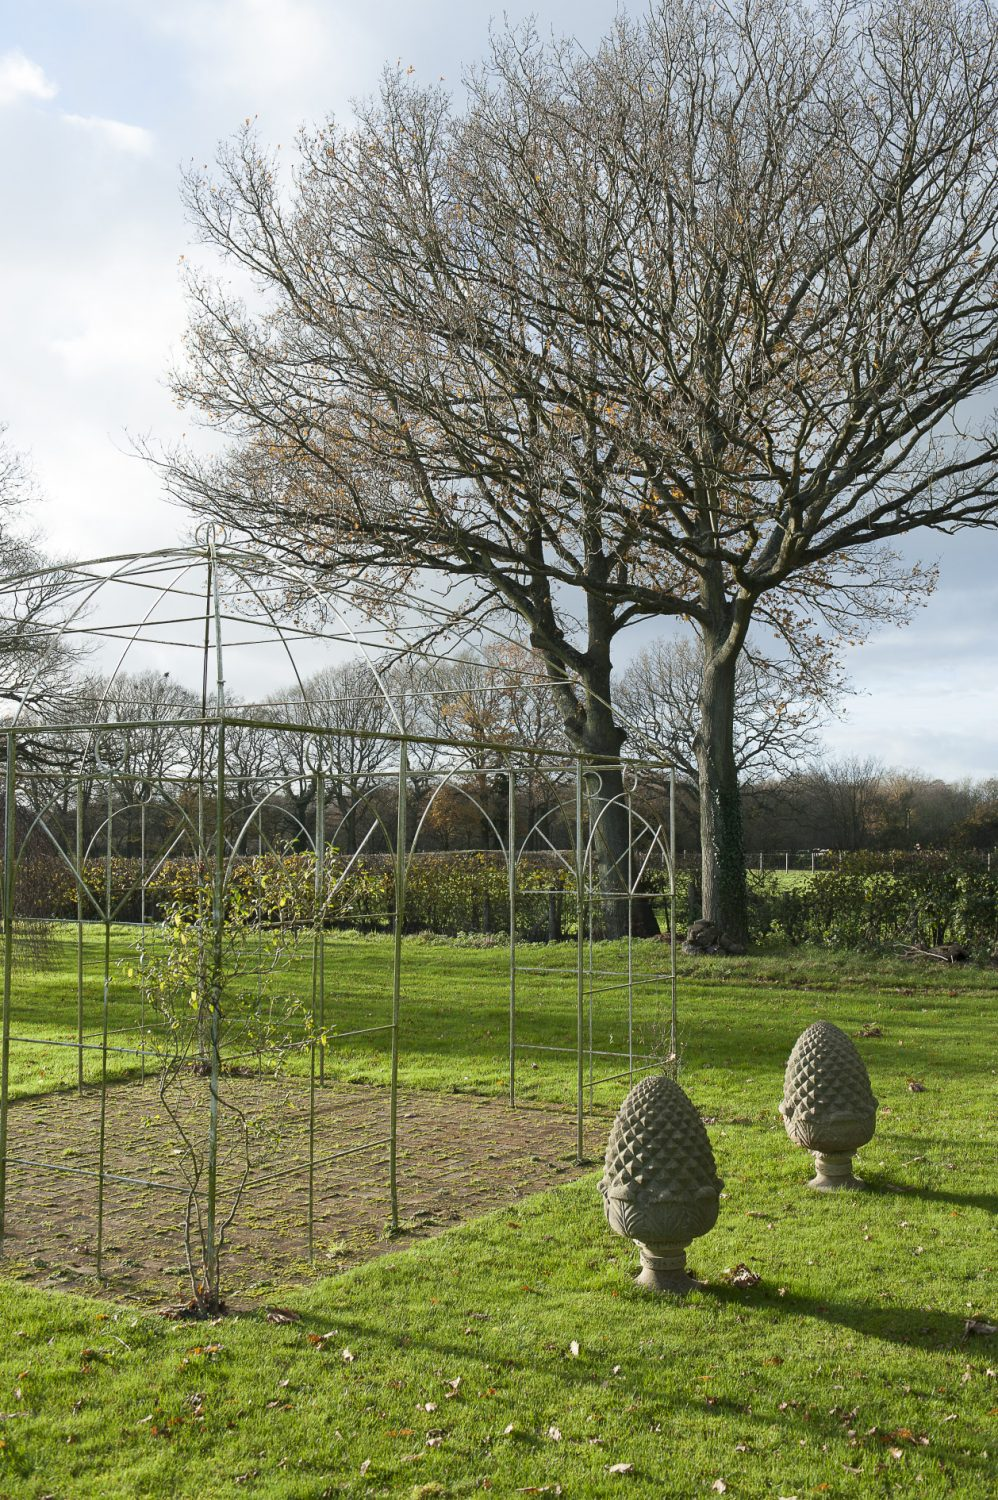 Sarah is kept busy tending the large garden, which includes a duck pond, fruit trees and trellises, as well as a vast lawn